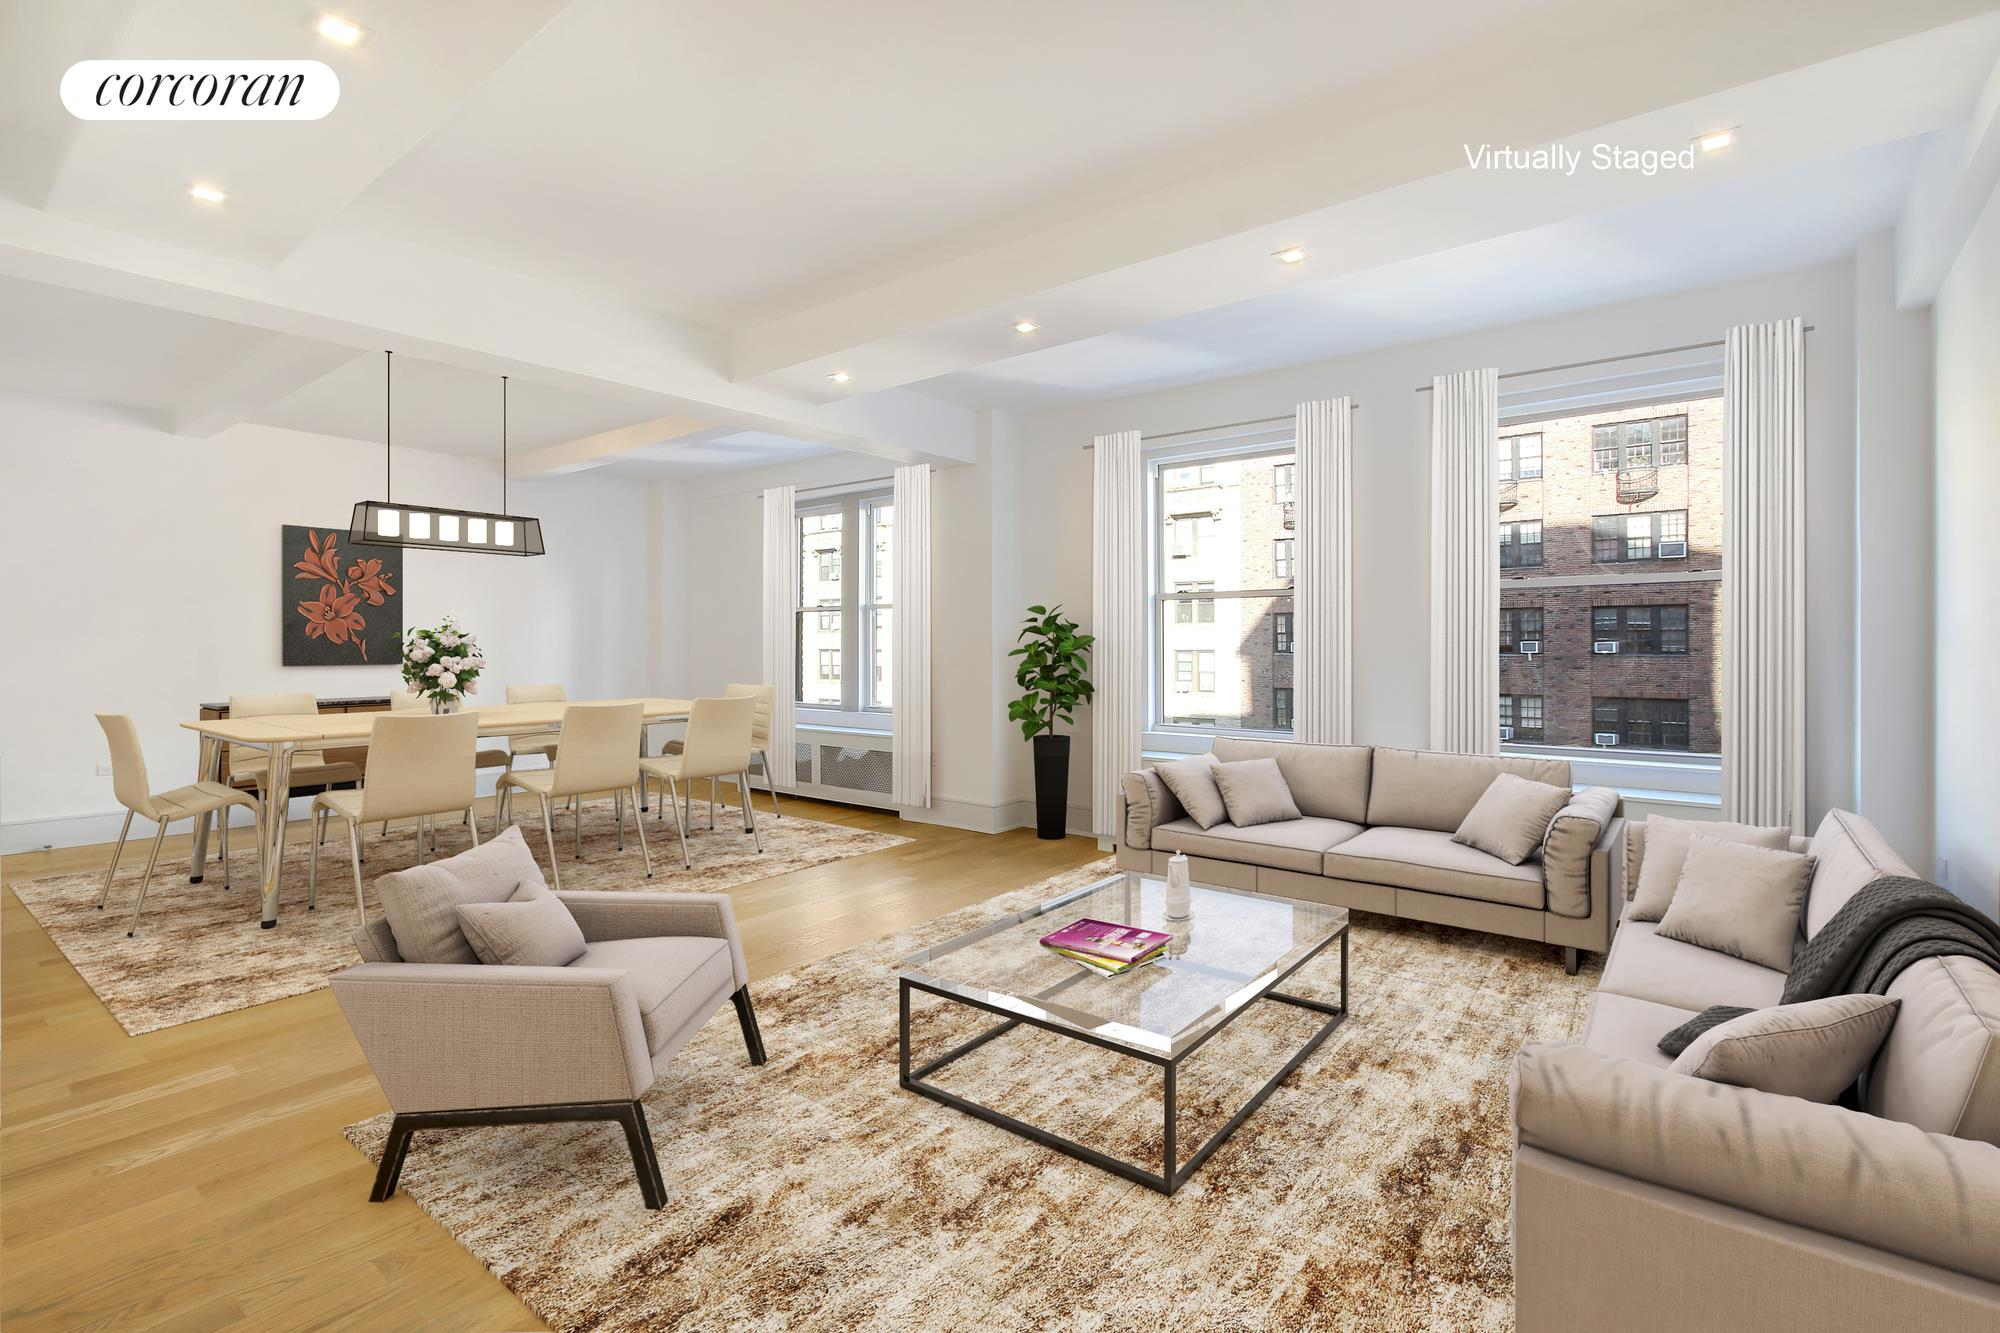 Corcoran, 40 West 72nd Street, Apt. 121, Upper West Side Real Estate ...